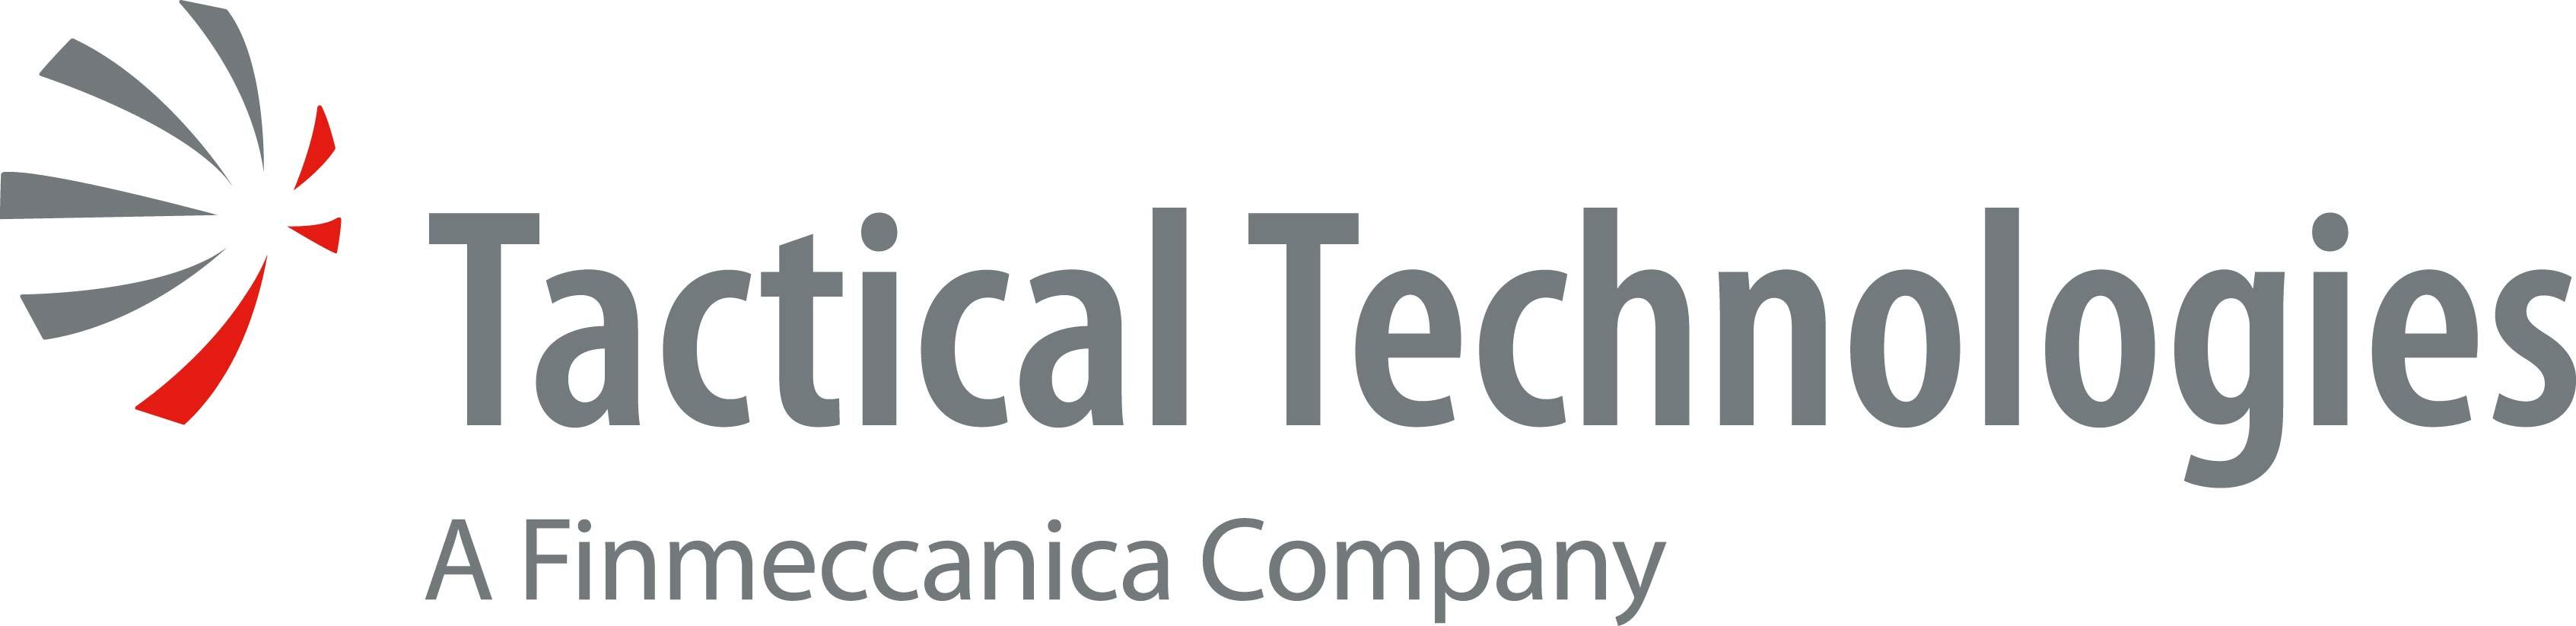 Logo_TacticalTechnologies_stacc